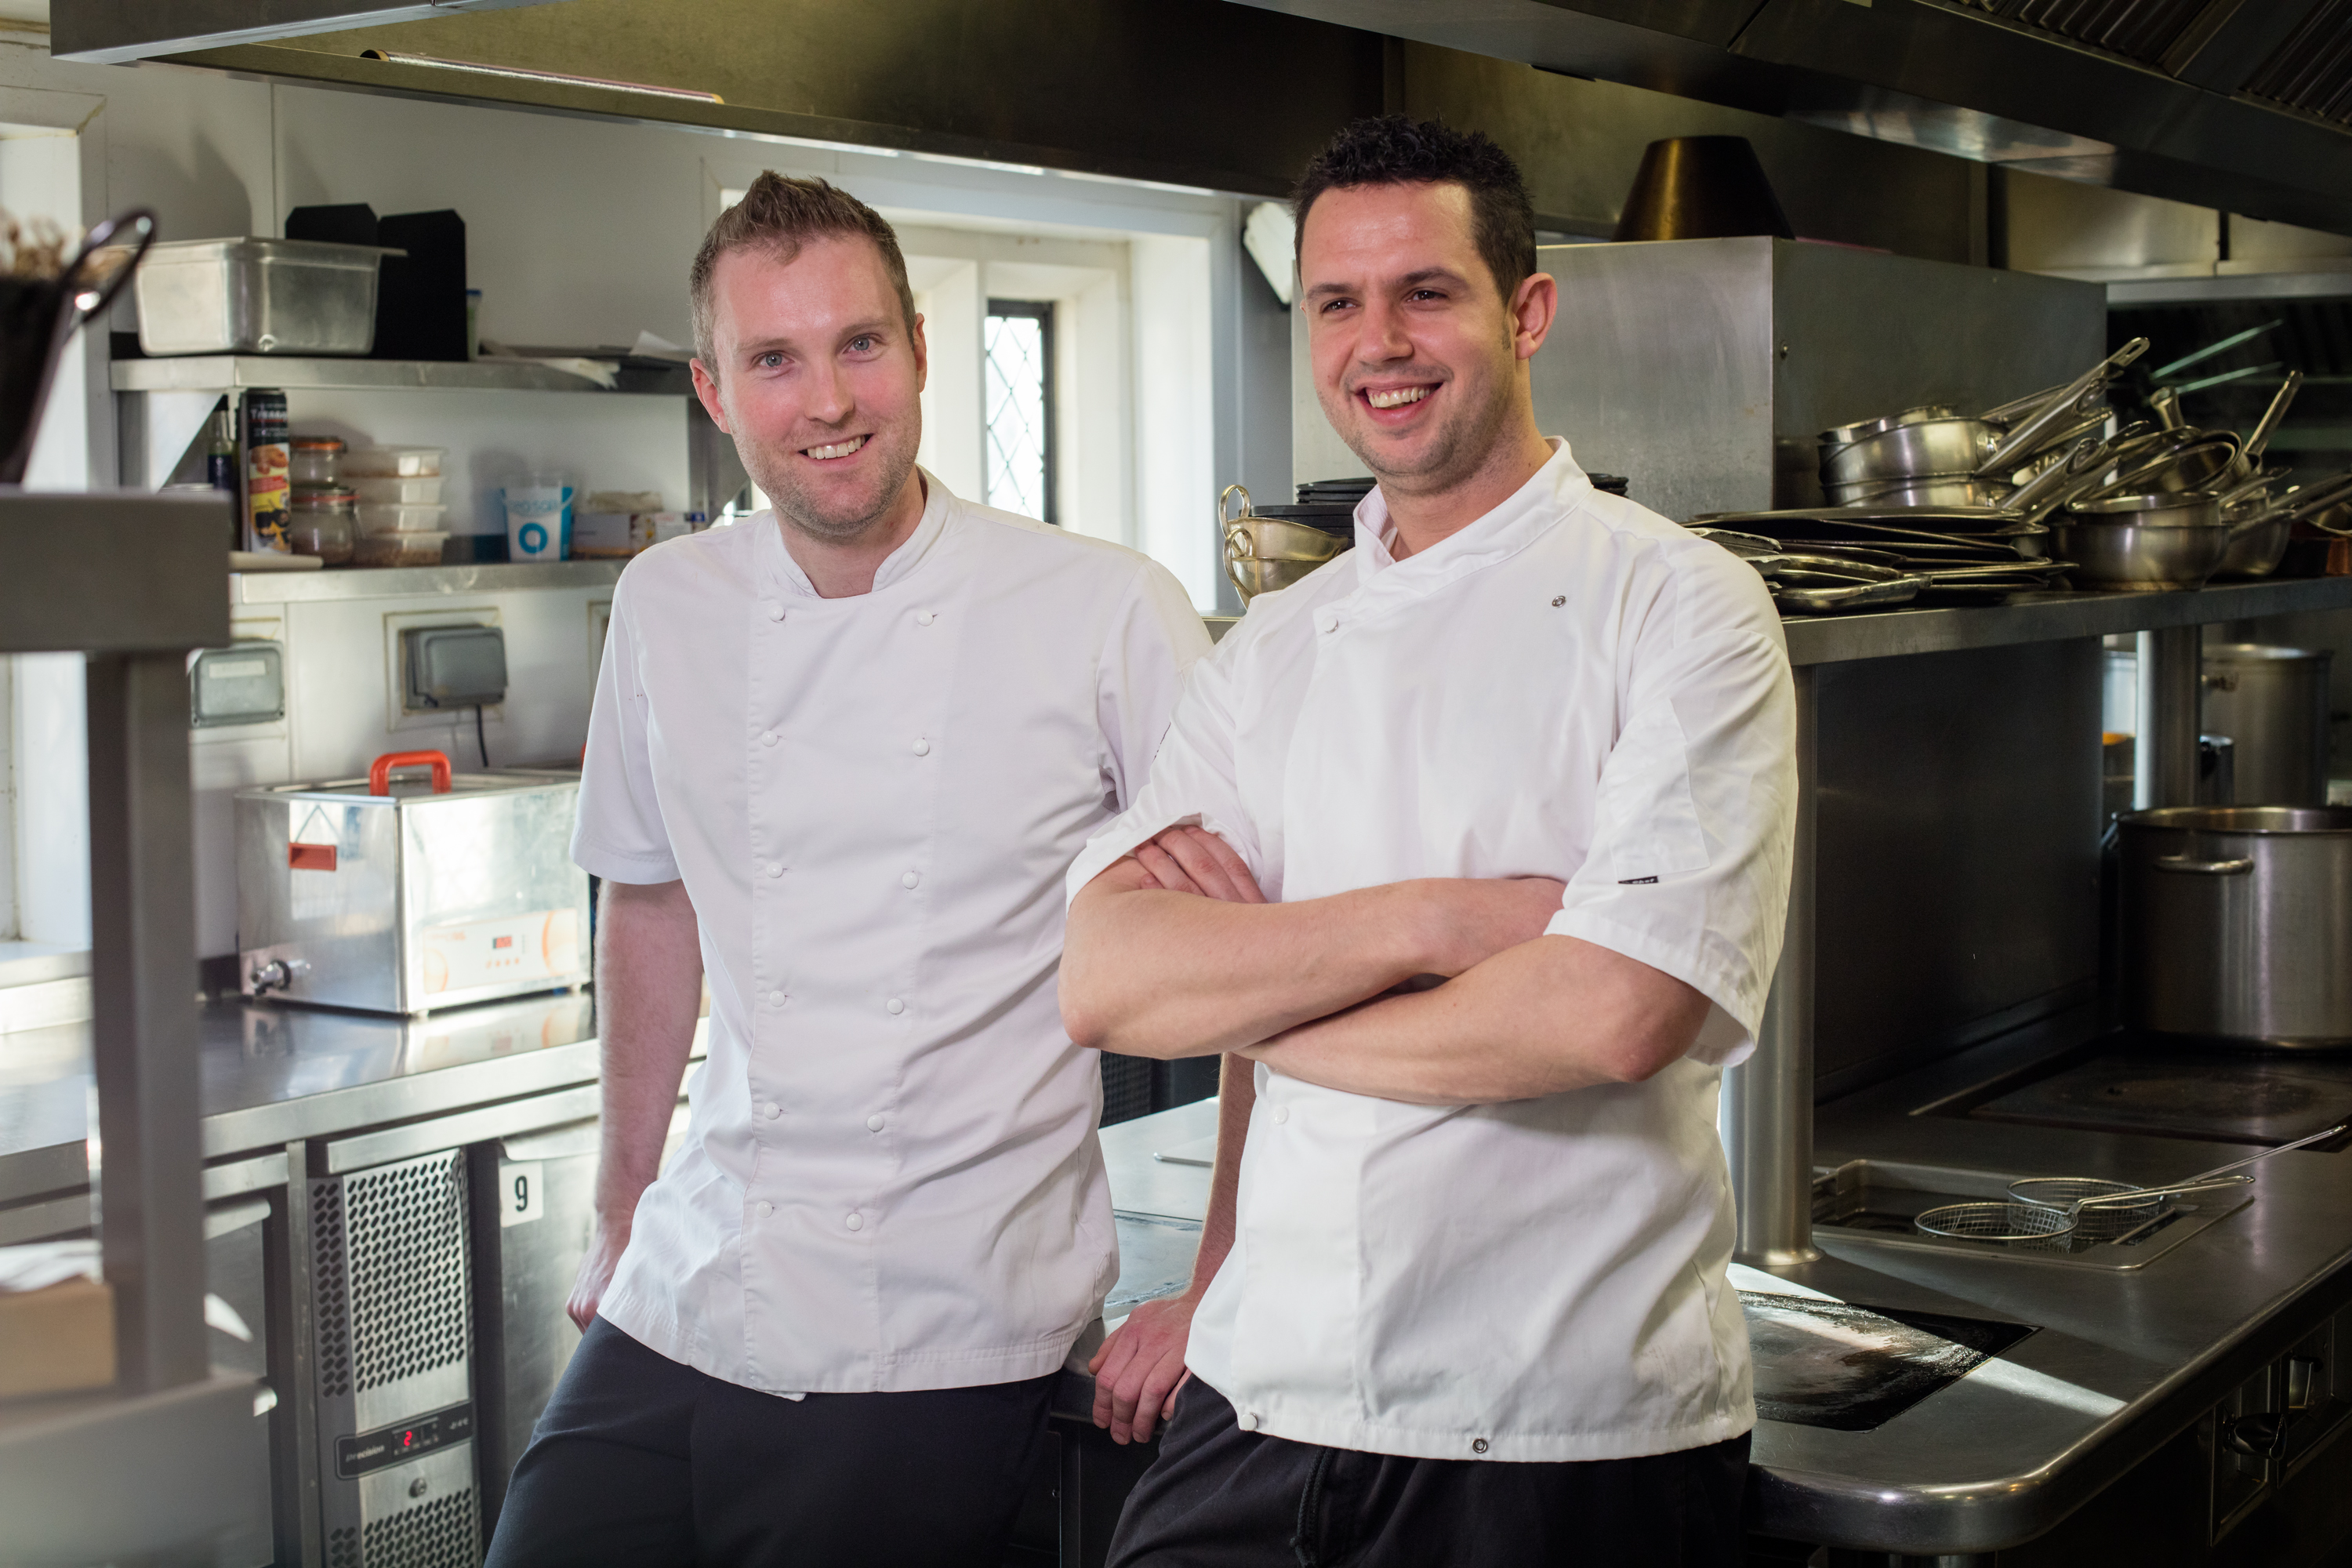 Head Chef Douglas Balish with Executive Chef Marc Hardiman